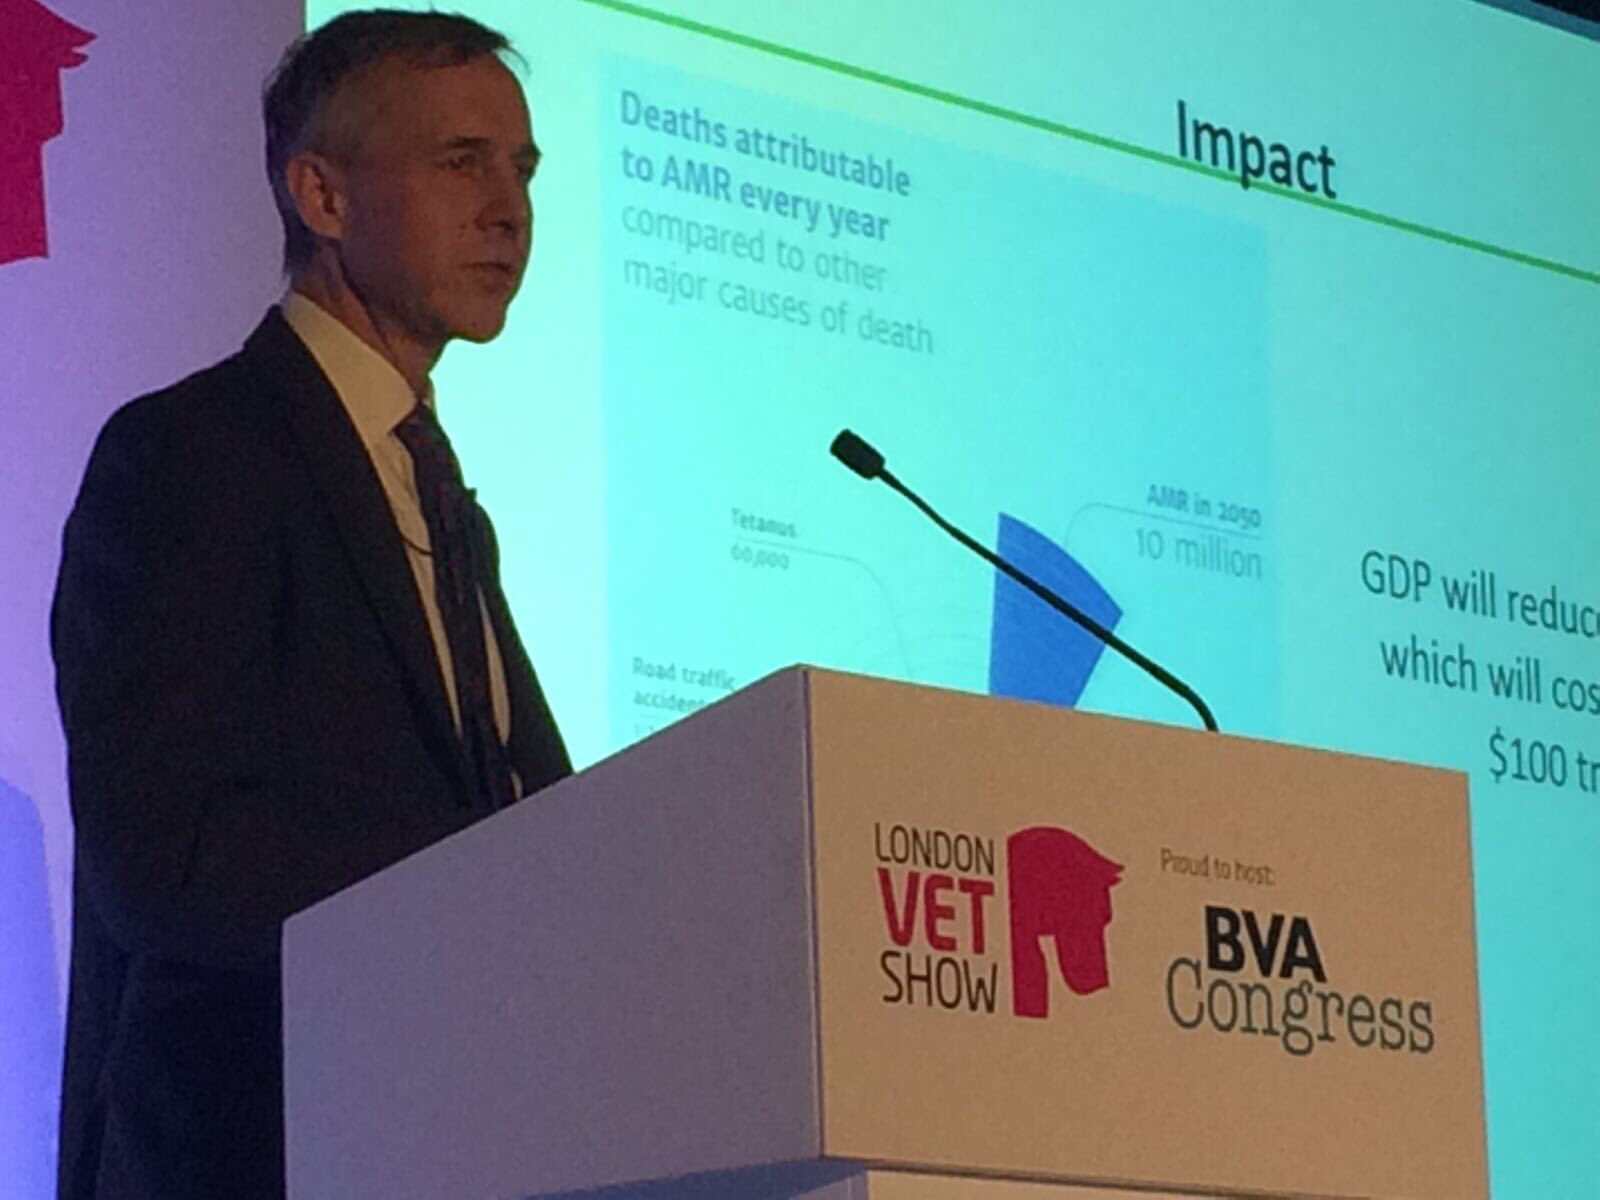 "@ChiefVetUK: ""nice to speak to you as the VMD publishes the VARSS report, showing a 9% fall in sales"" #vetshow https://t.co/5EwF7CZ6wv"